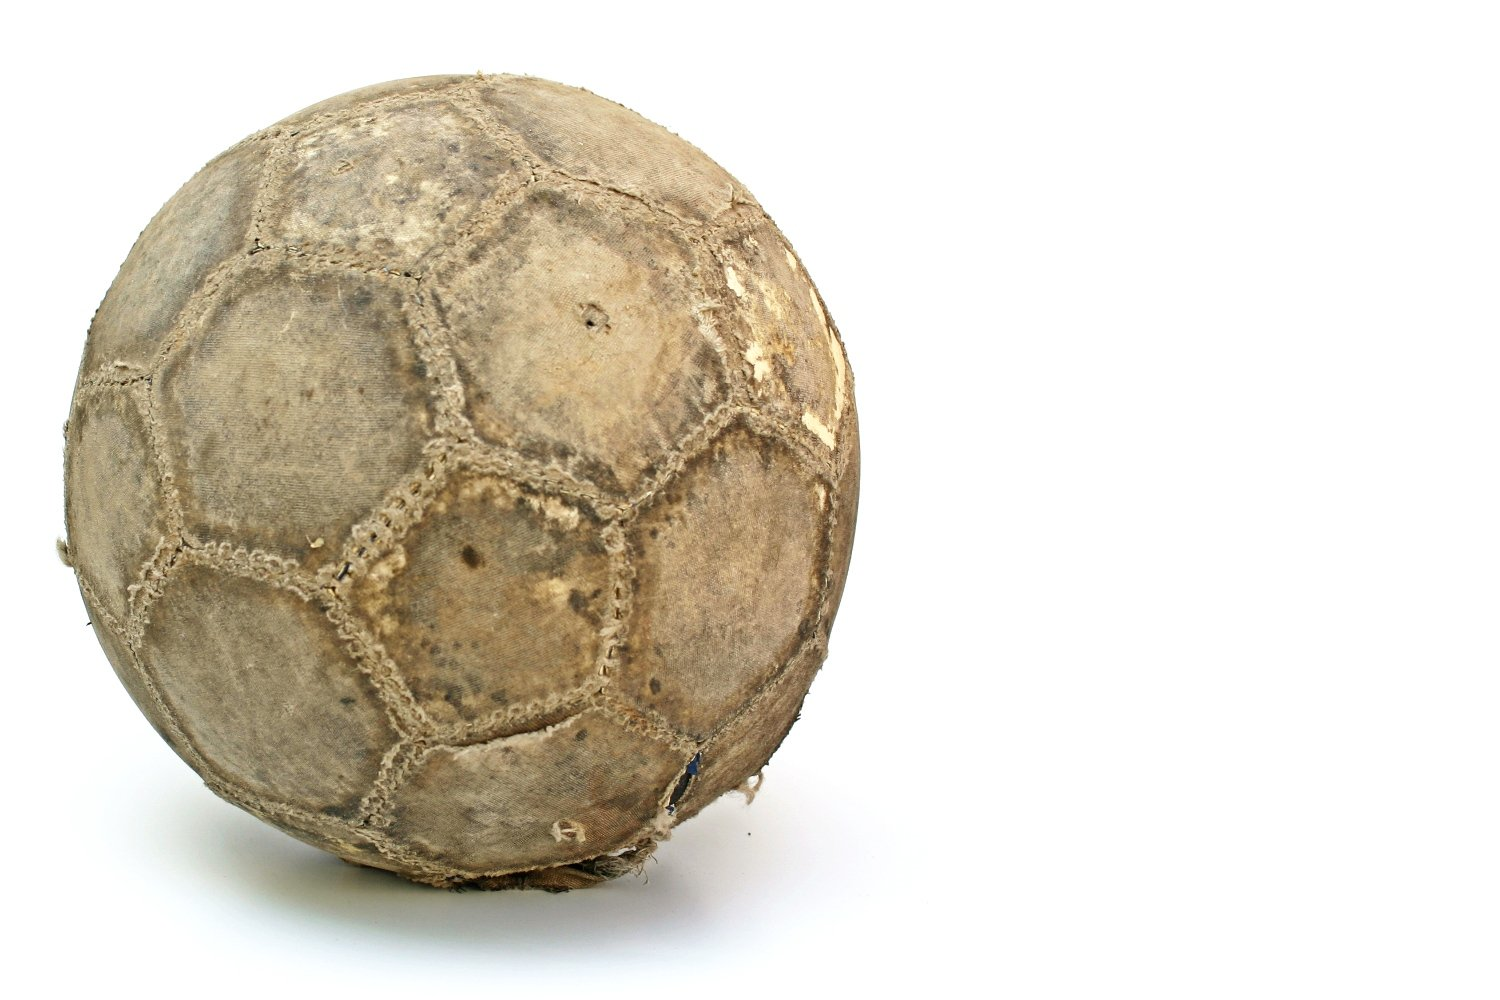 soccer ball, Activity, Shape, Leather, Leisure, HQ Photo